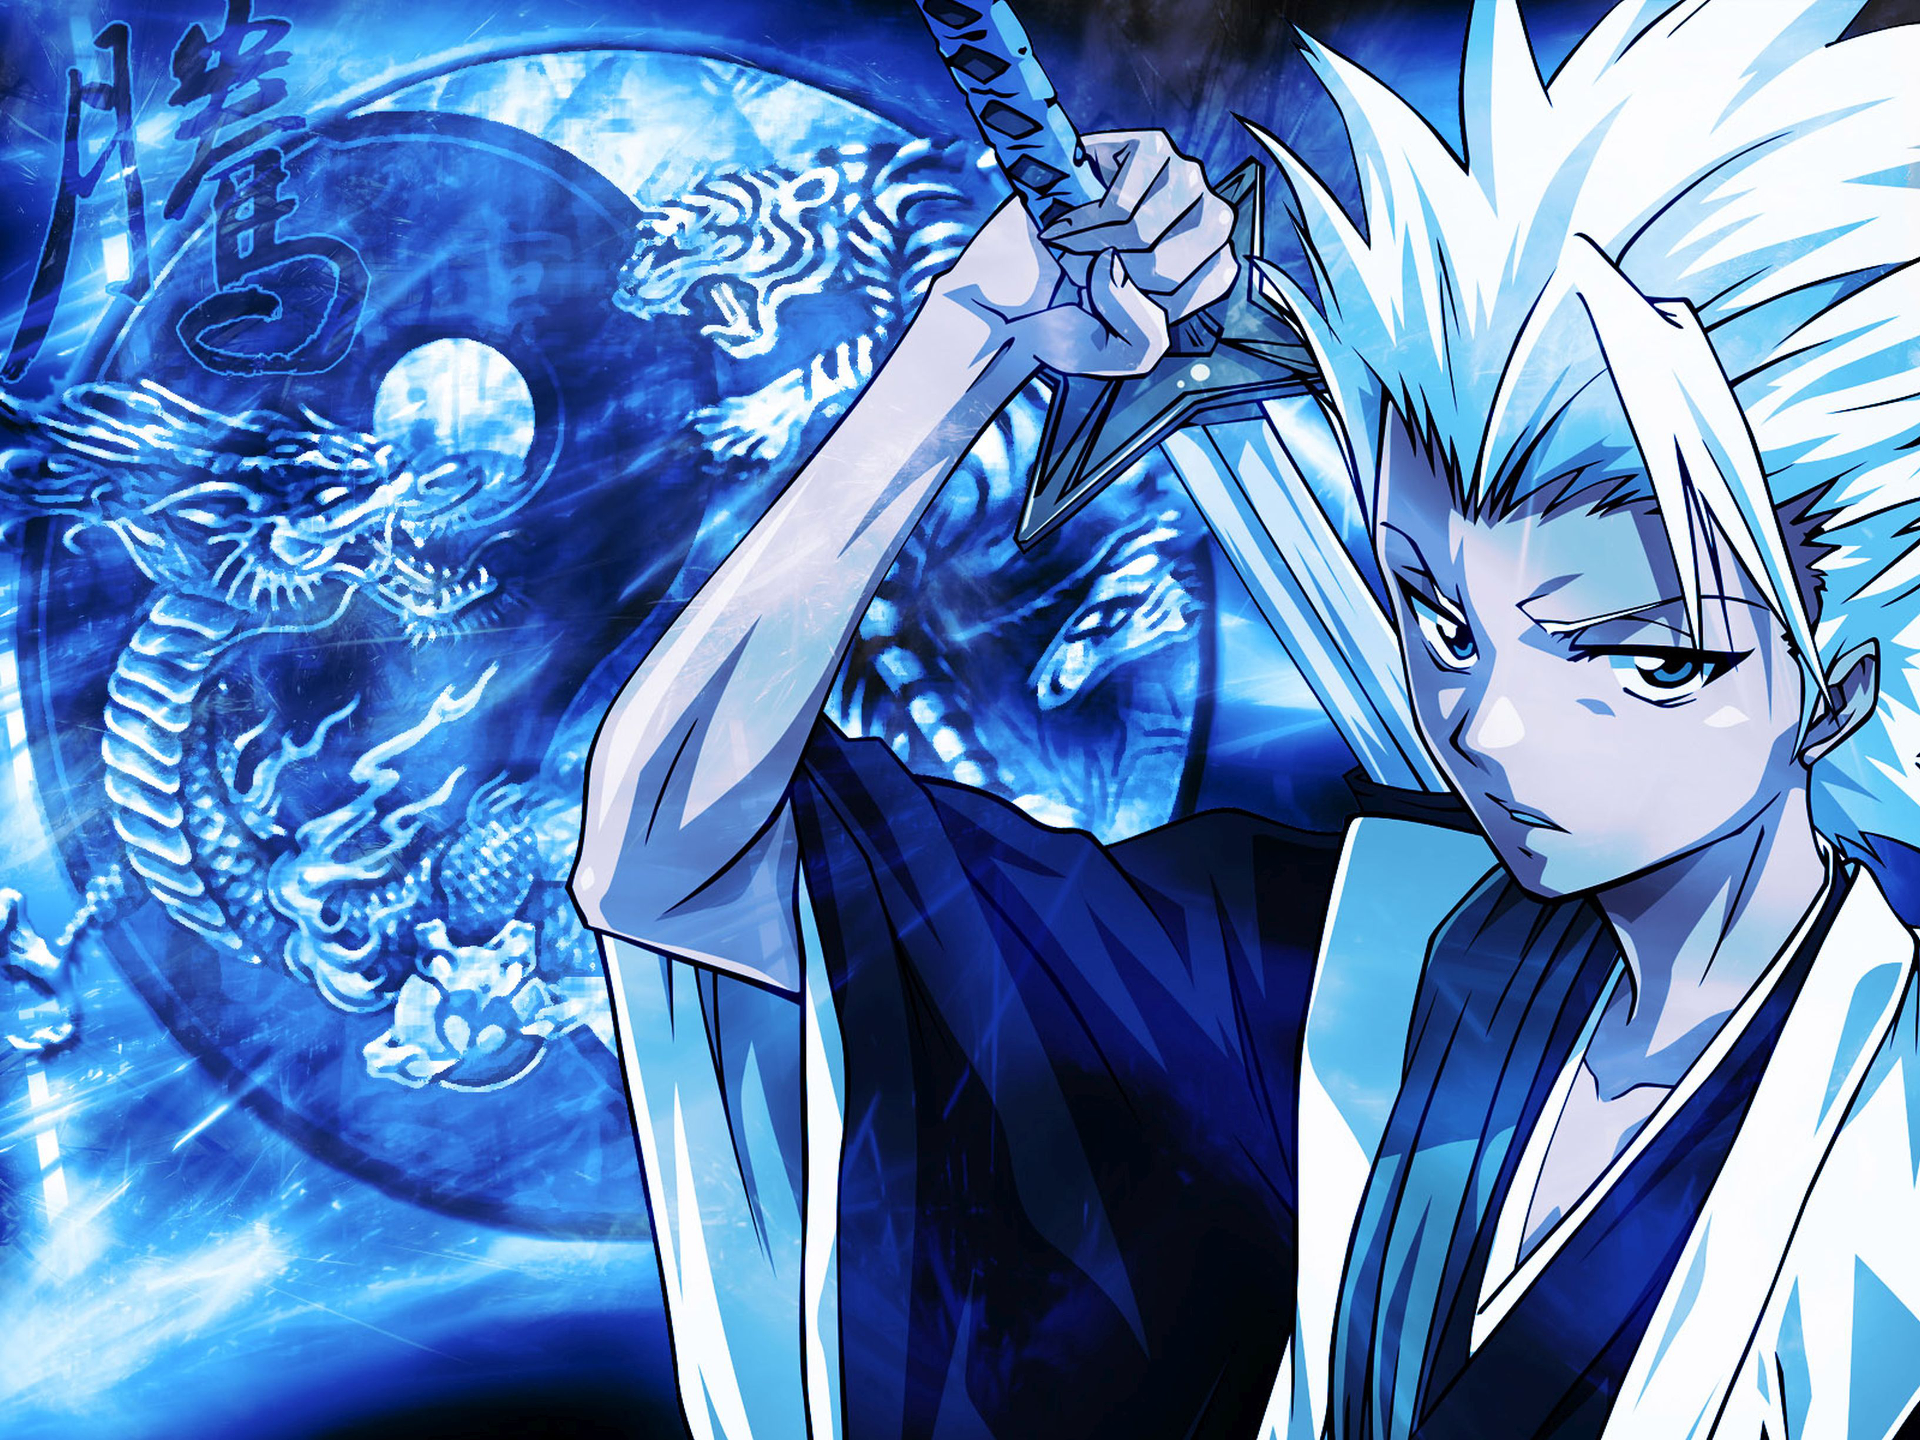 Anime Pics, HDQ Anime Images Collection for Desktop, VV Top Ten Samurai Anime Part  1920x1440